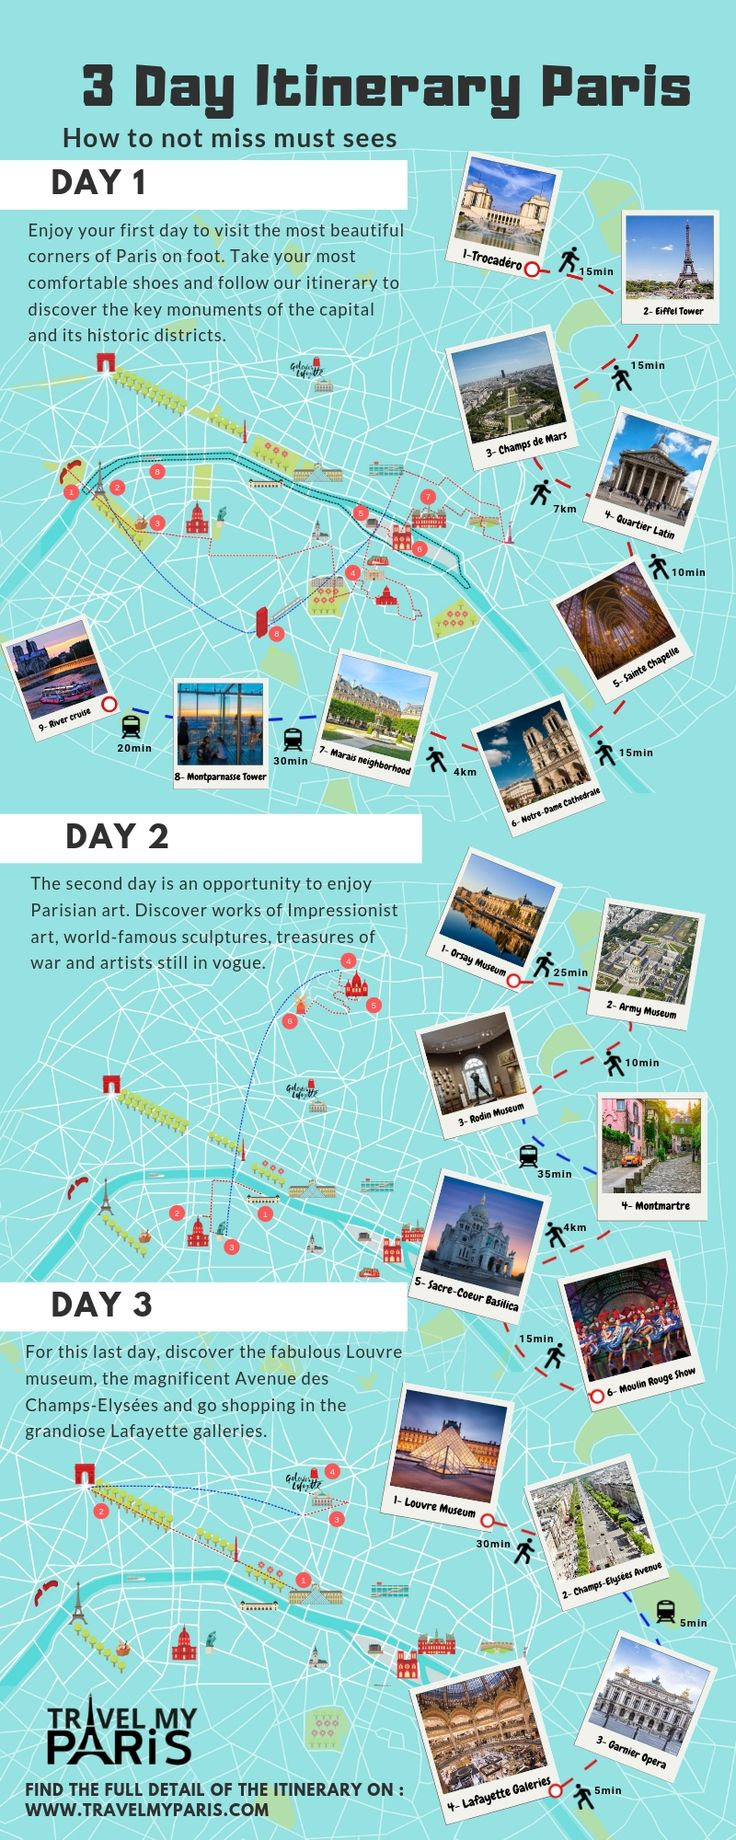 3 day itinerary Paris – Travel map